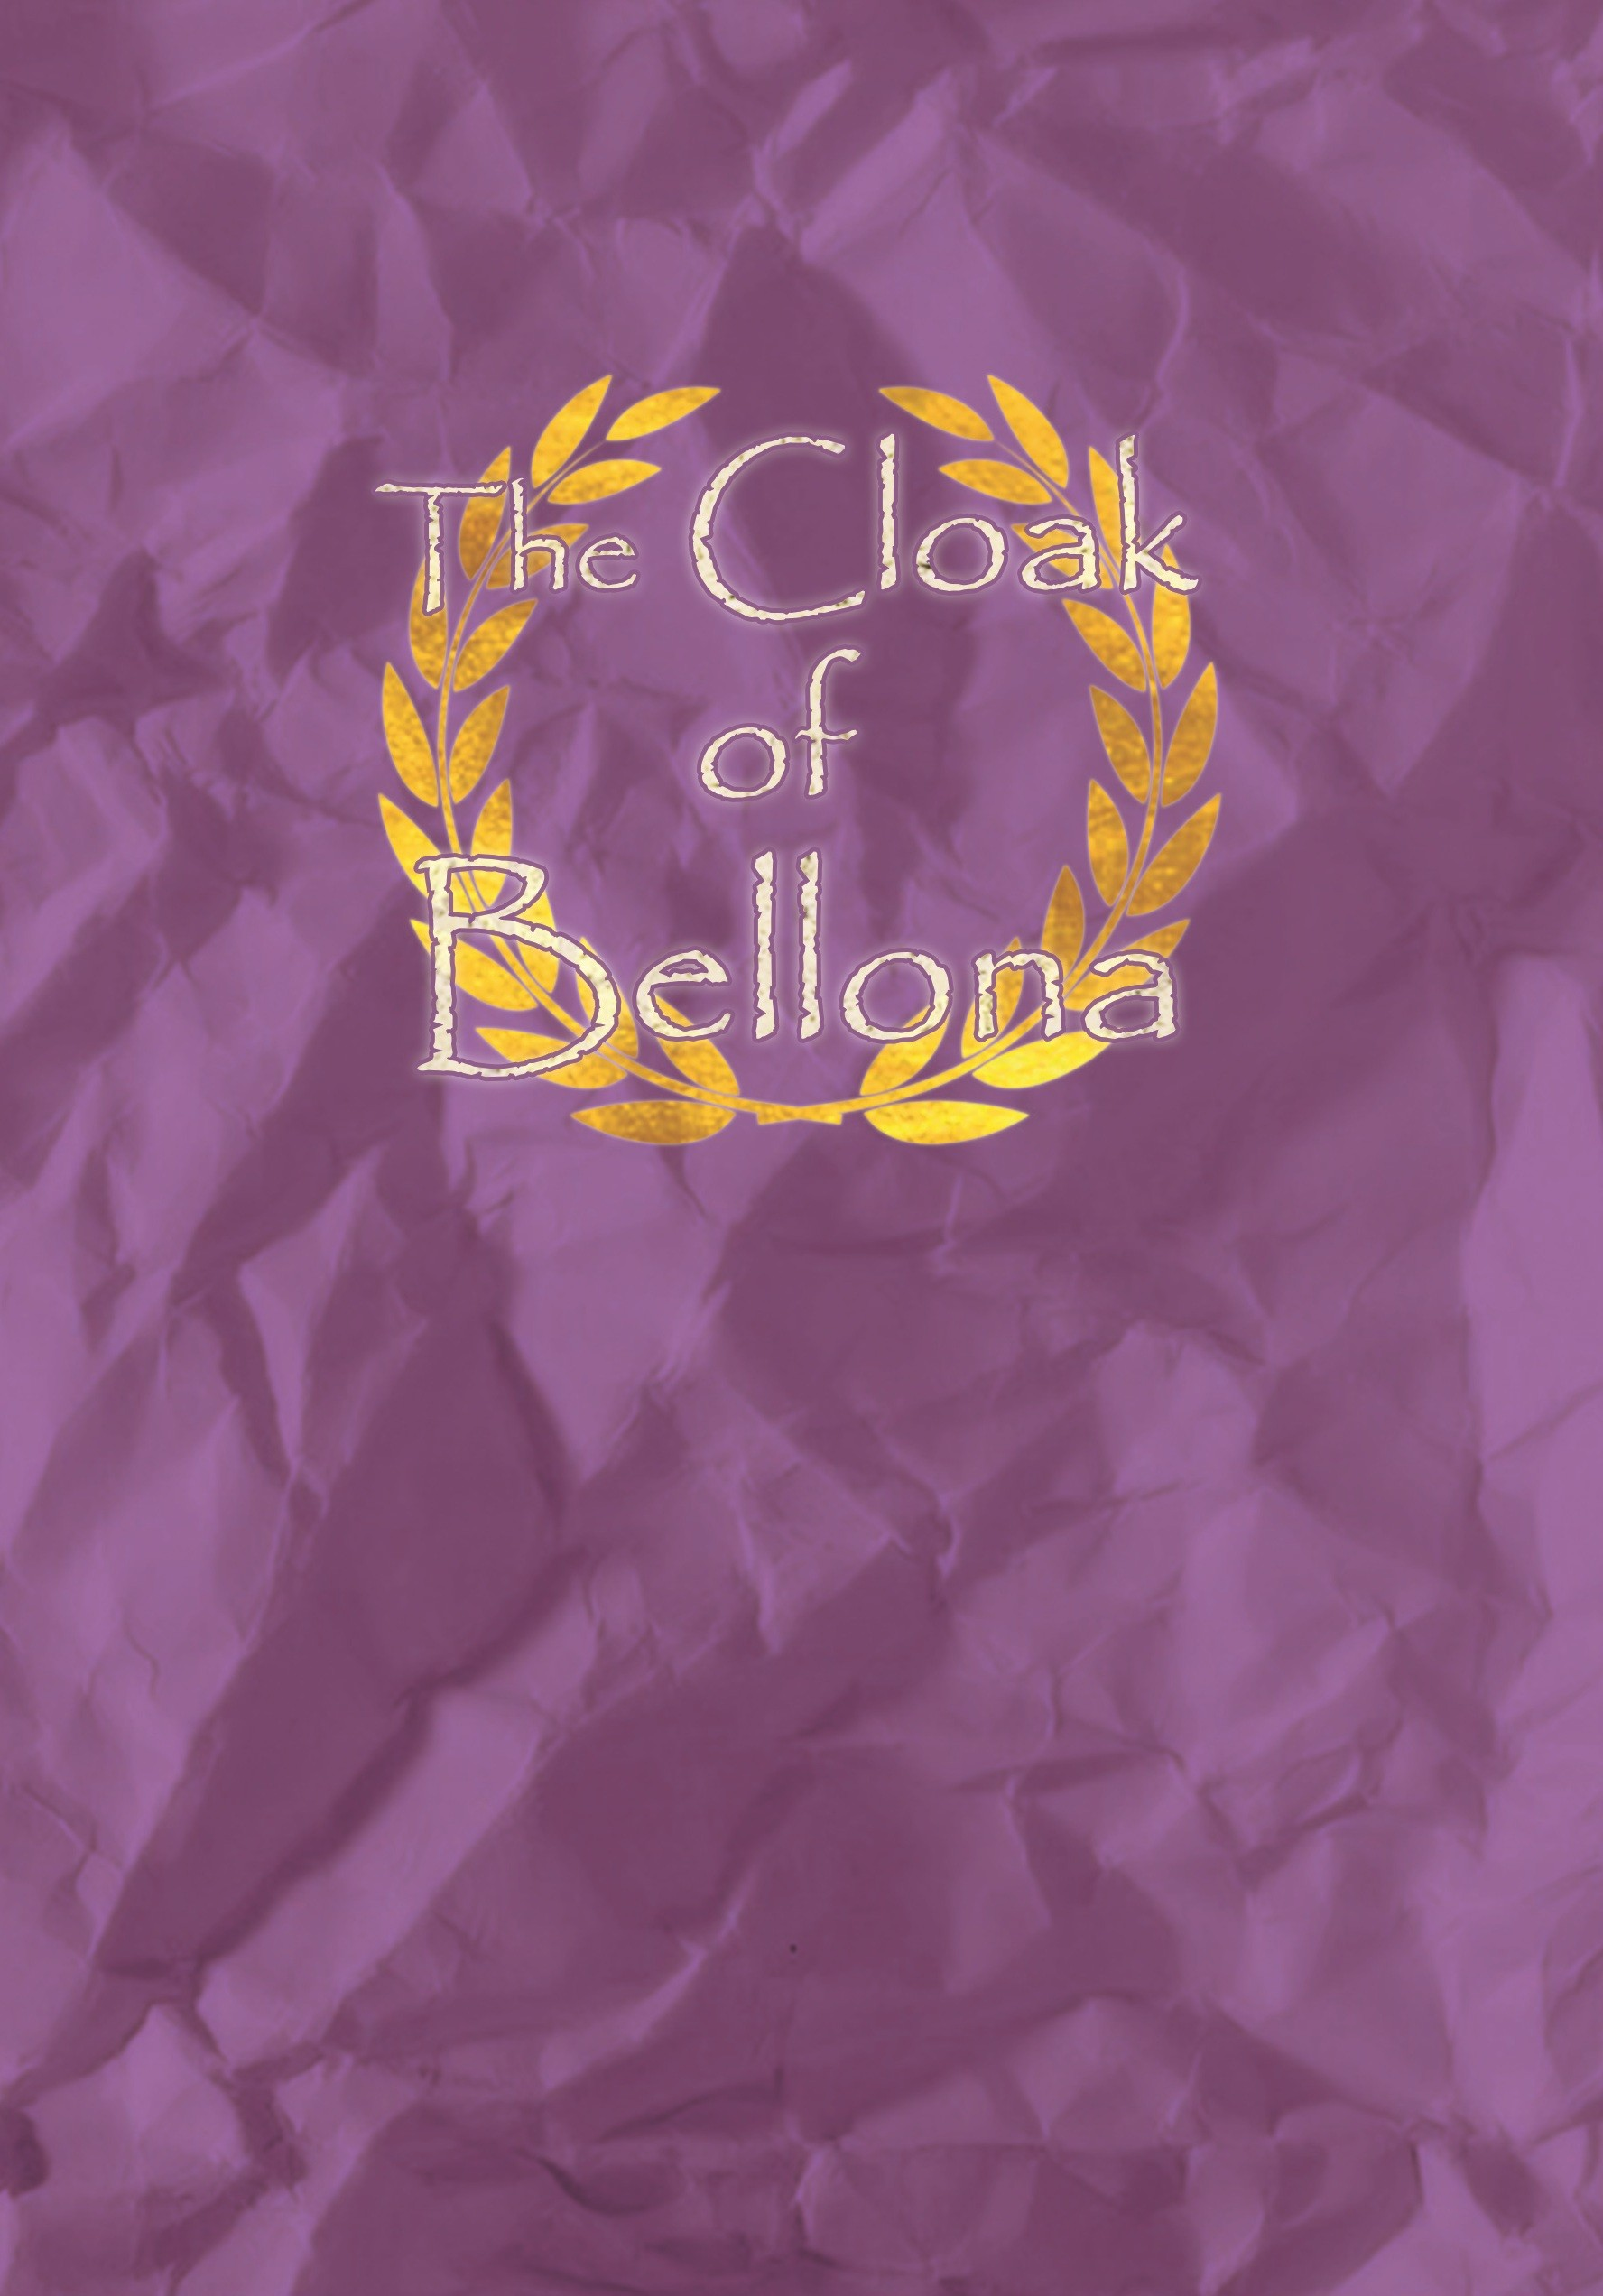 The Cloak of Bellona